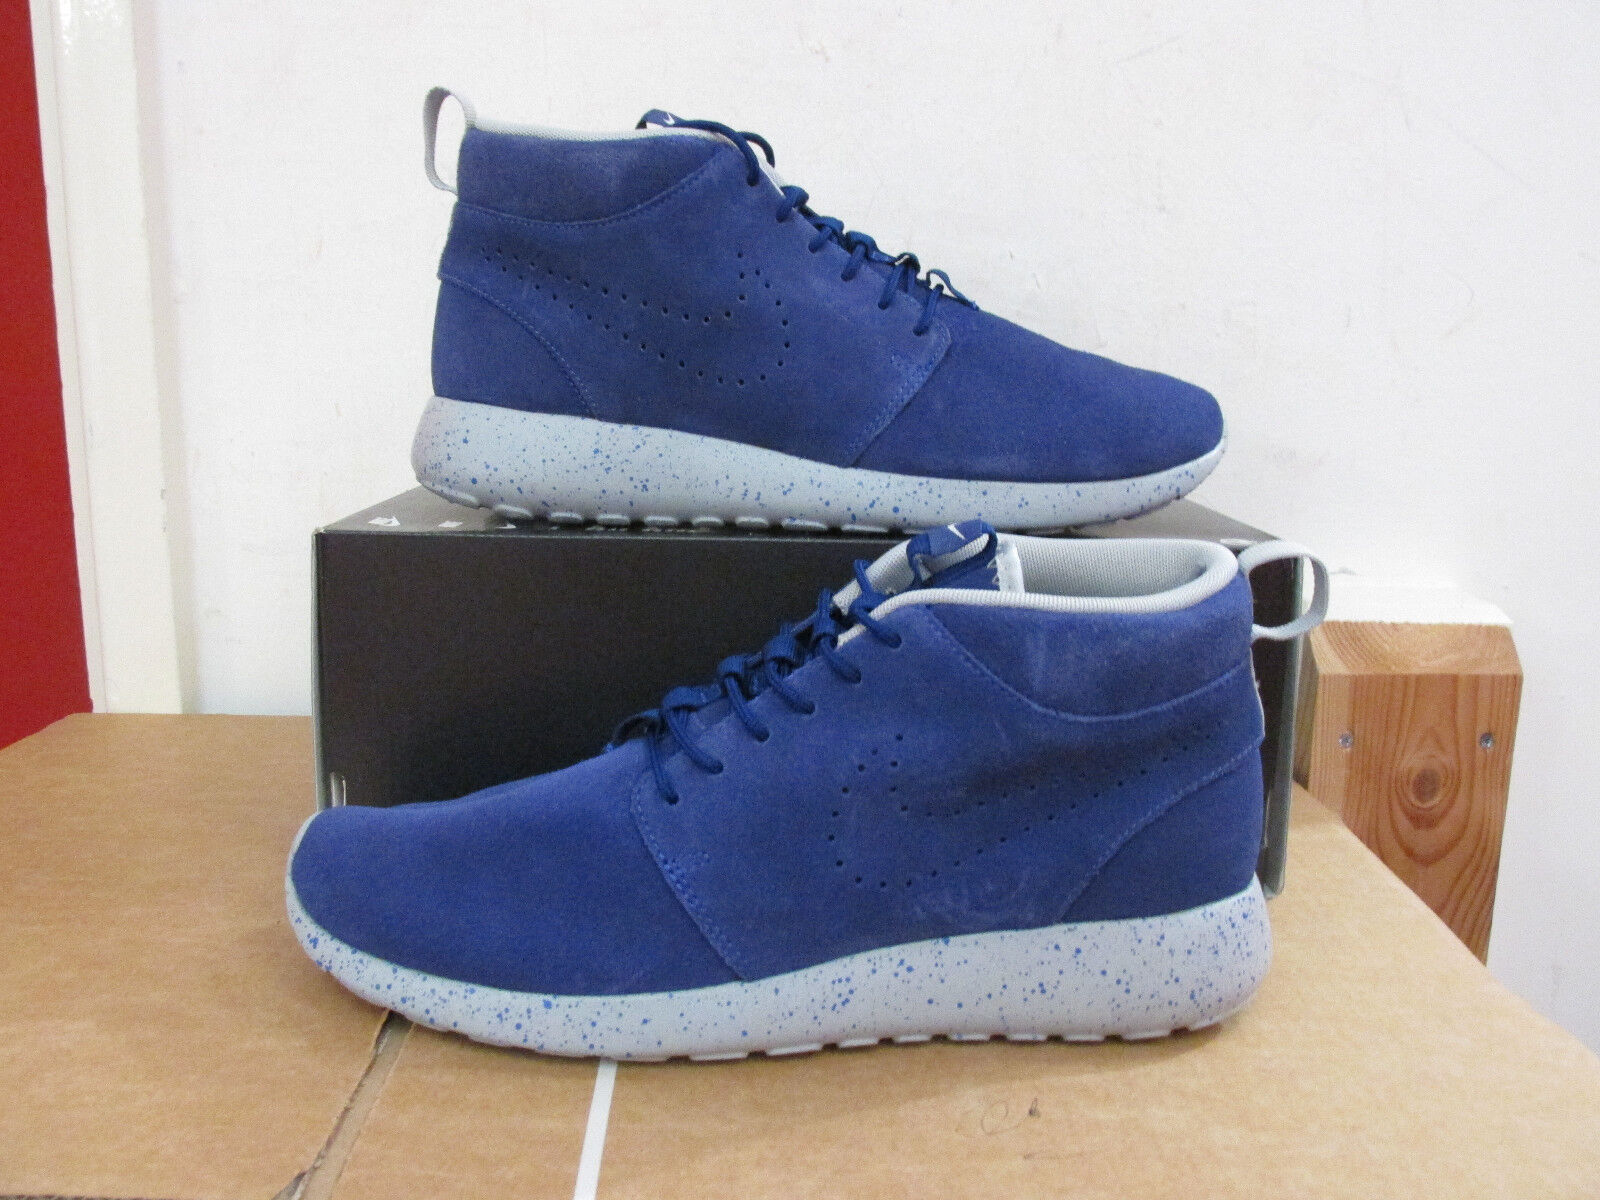 Nike ID Mens Rosherun Mid Trainers 653665 Sneakers 992 uk 8 us 9 eu 42.5